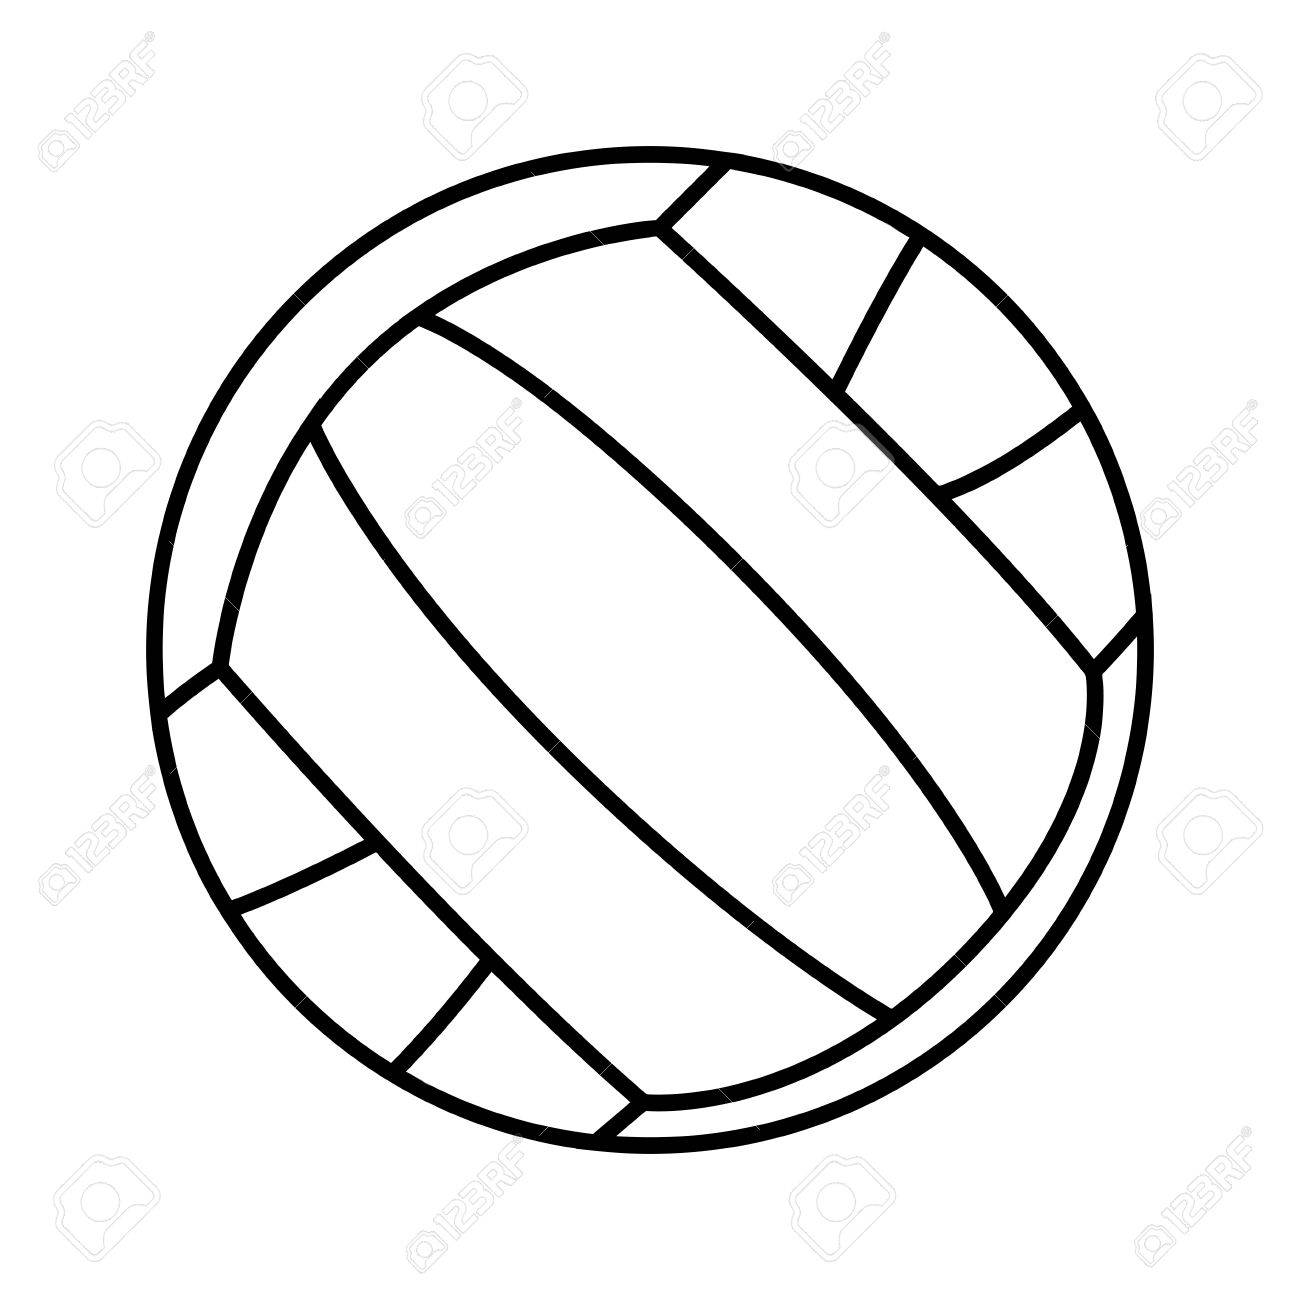 1300x1300 Isolated Outline Of A Volleyball Ball On A White Backdrop